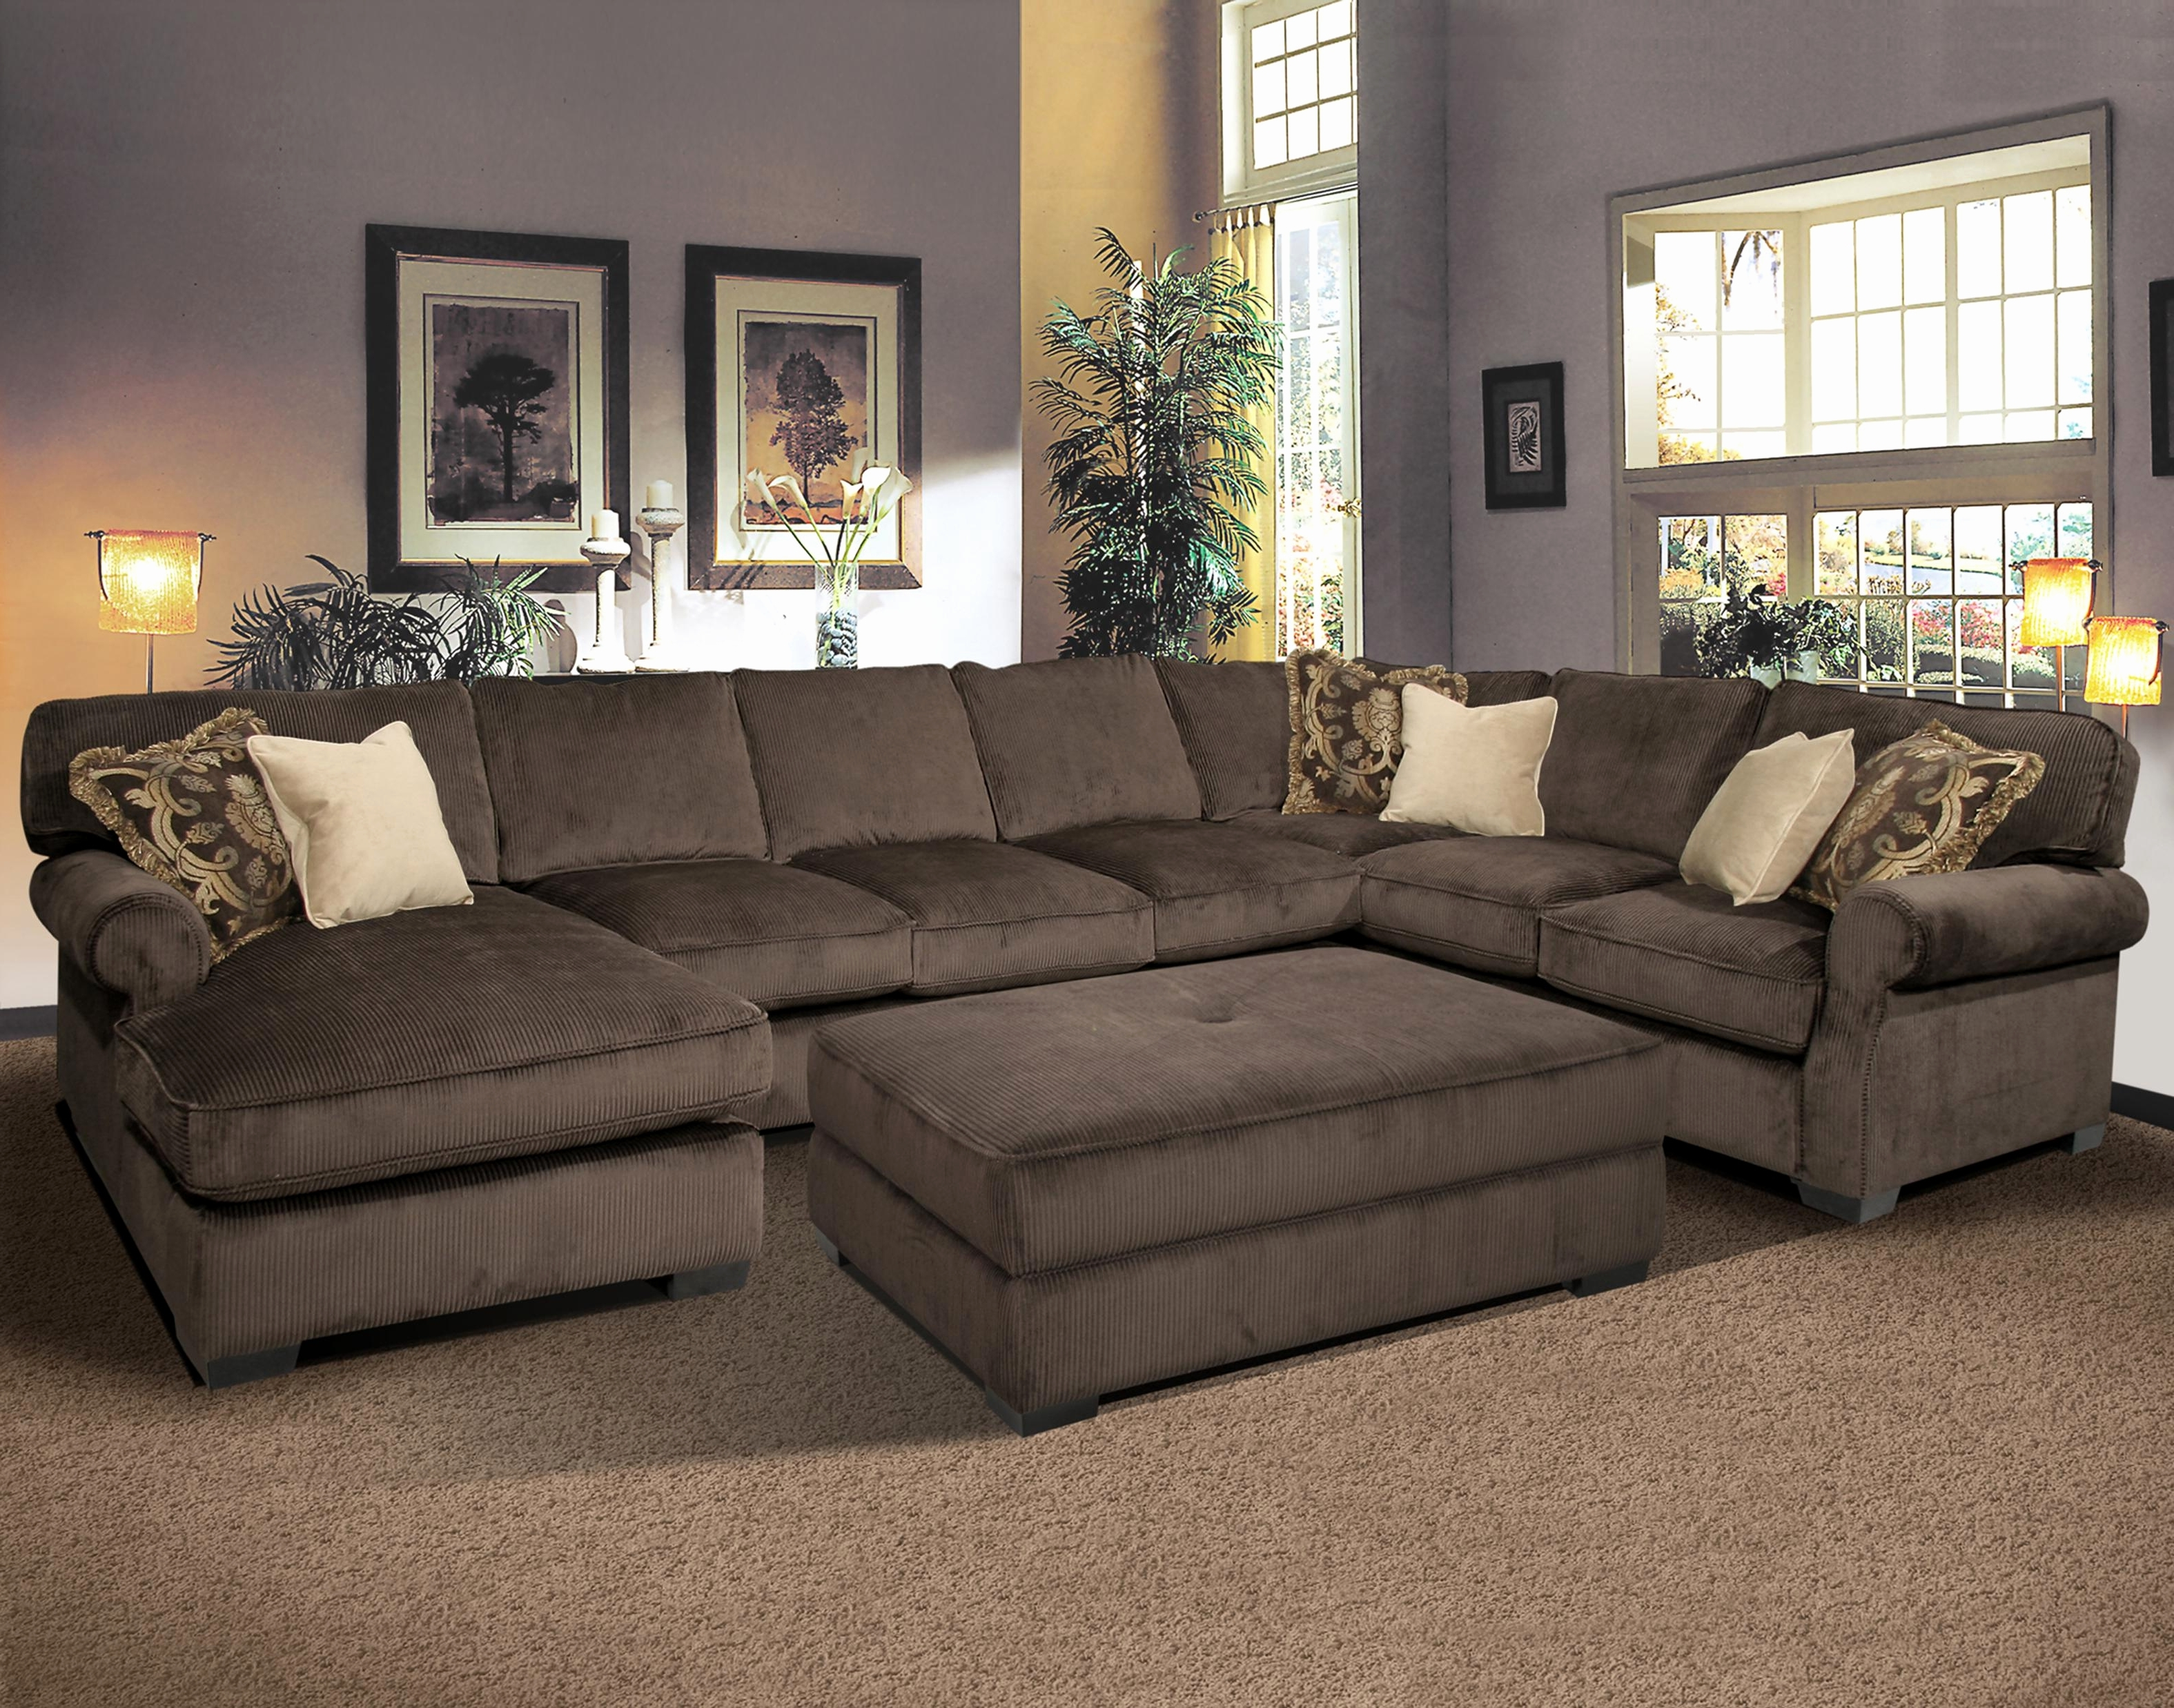 Widely Used Best Modular Sectional Sofa Good Sofa Elegant Clearance Sectional Inside Clearance Sectional Sofas (View 9 of 15)